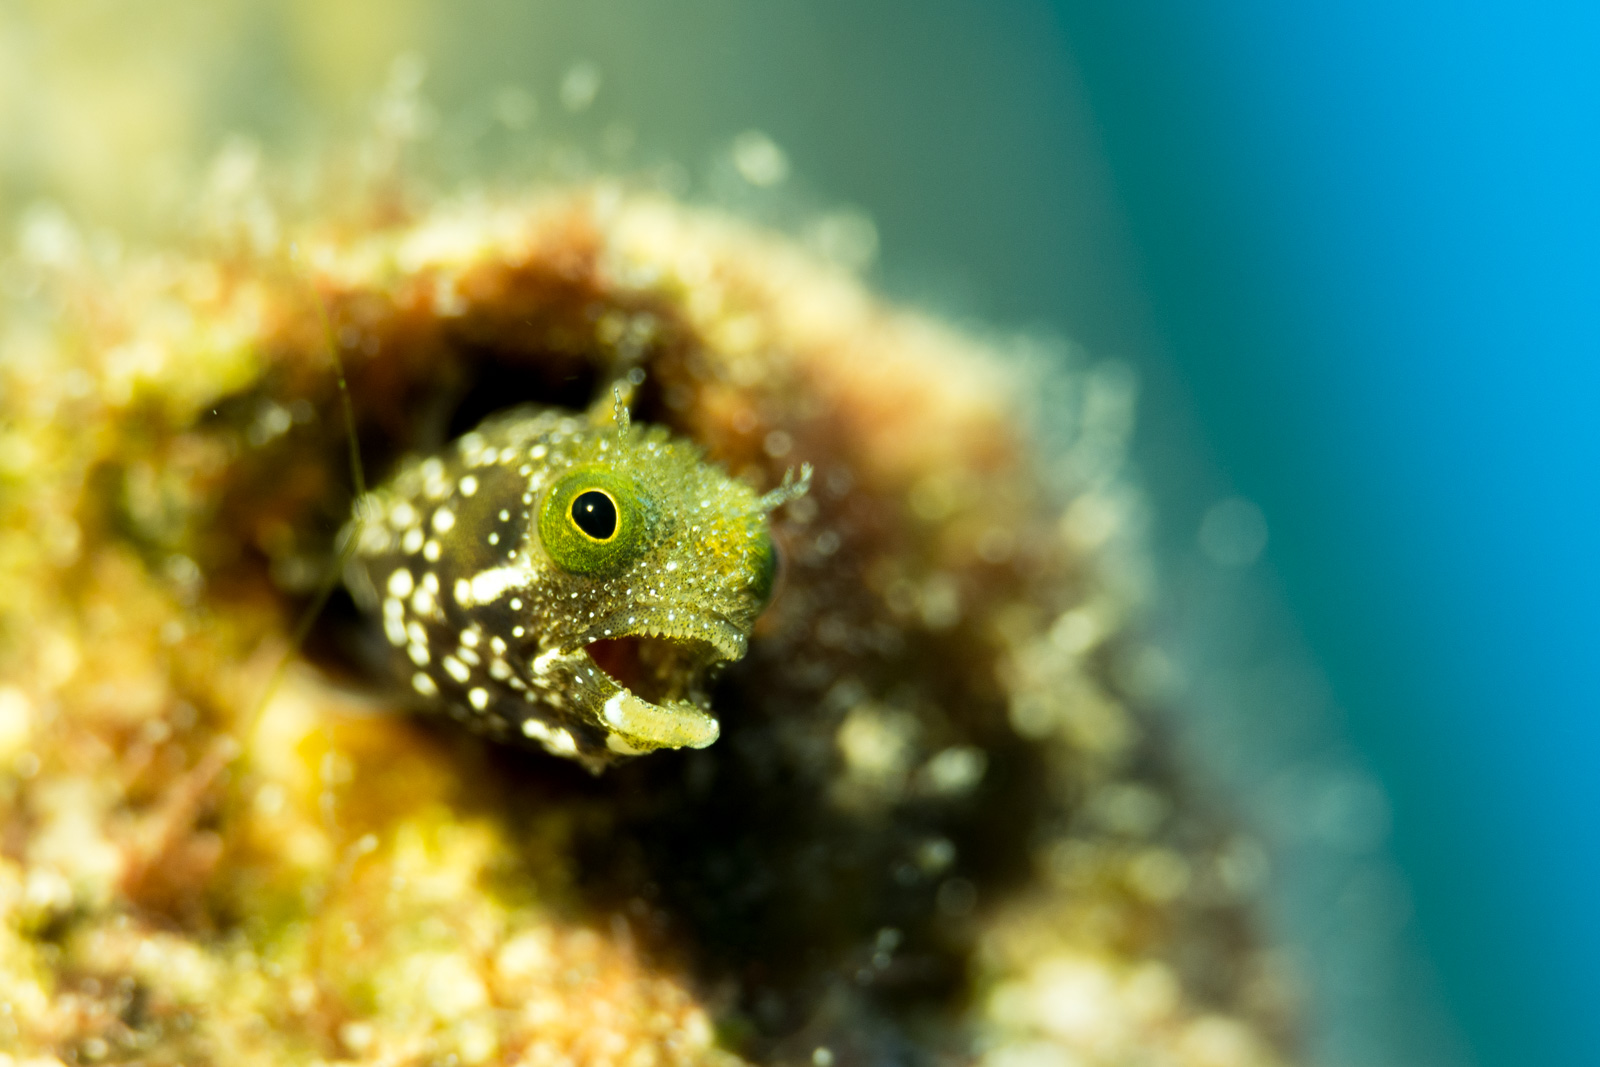 Blenny taken with a 60mm Macro lens, under a spot light from an I-Torch Venom 35s. ISO 500, 1/200, F/6.3